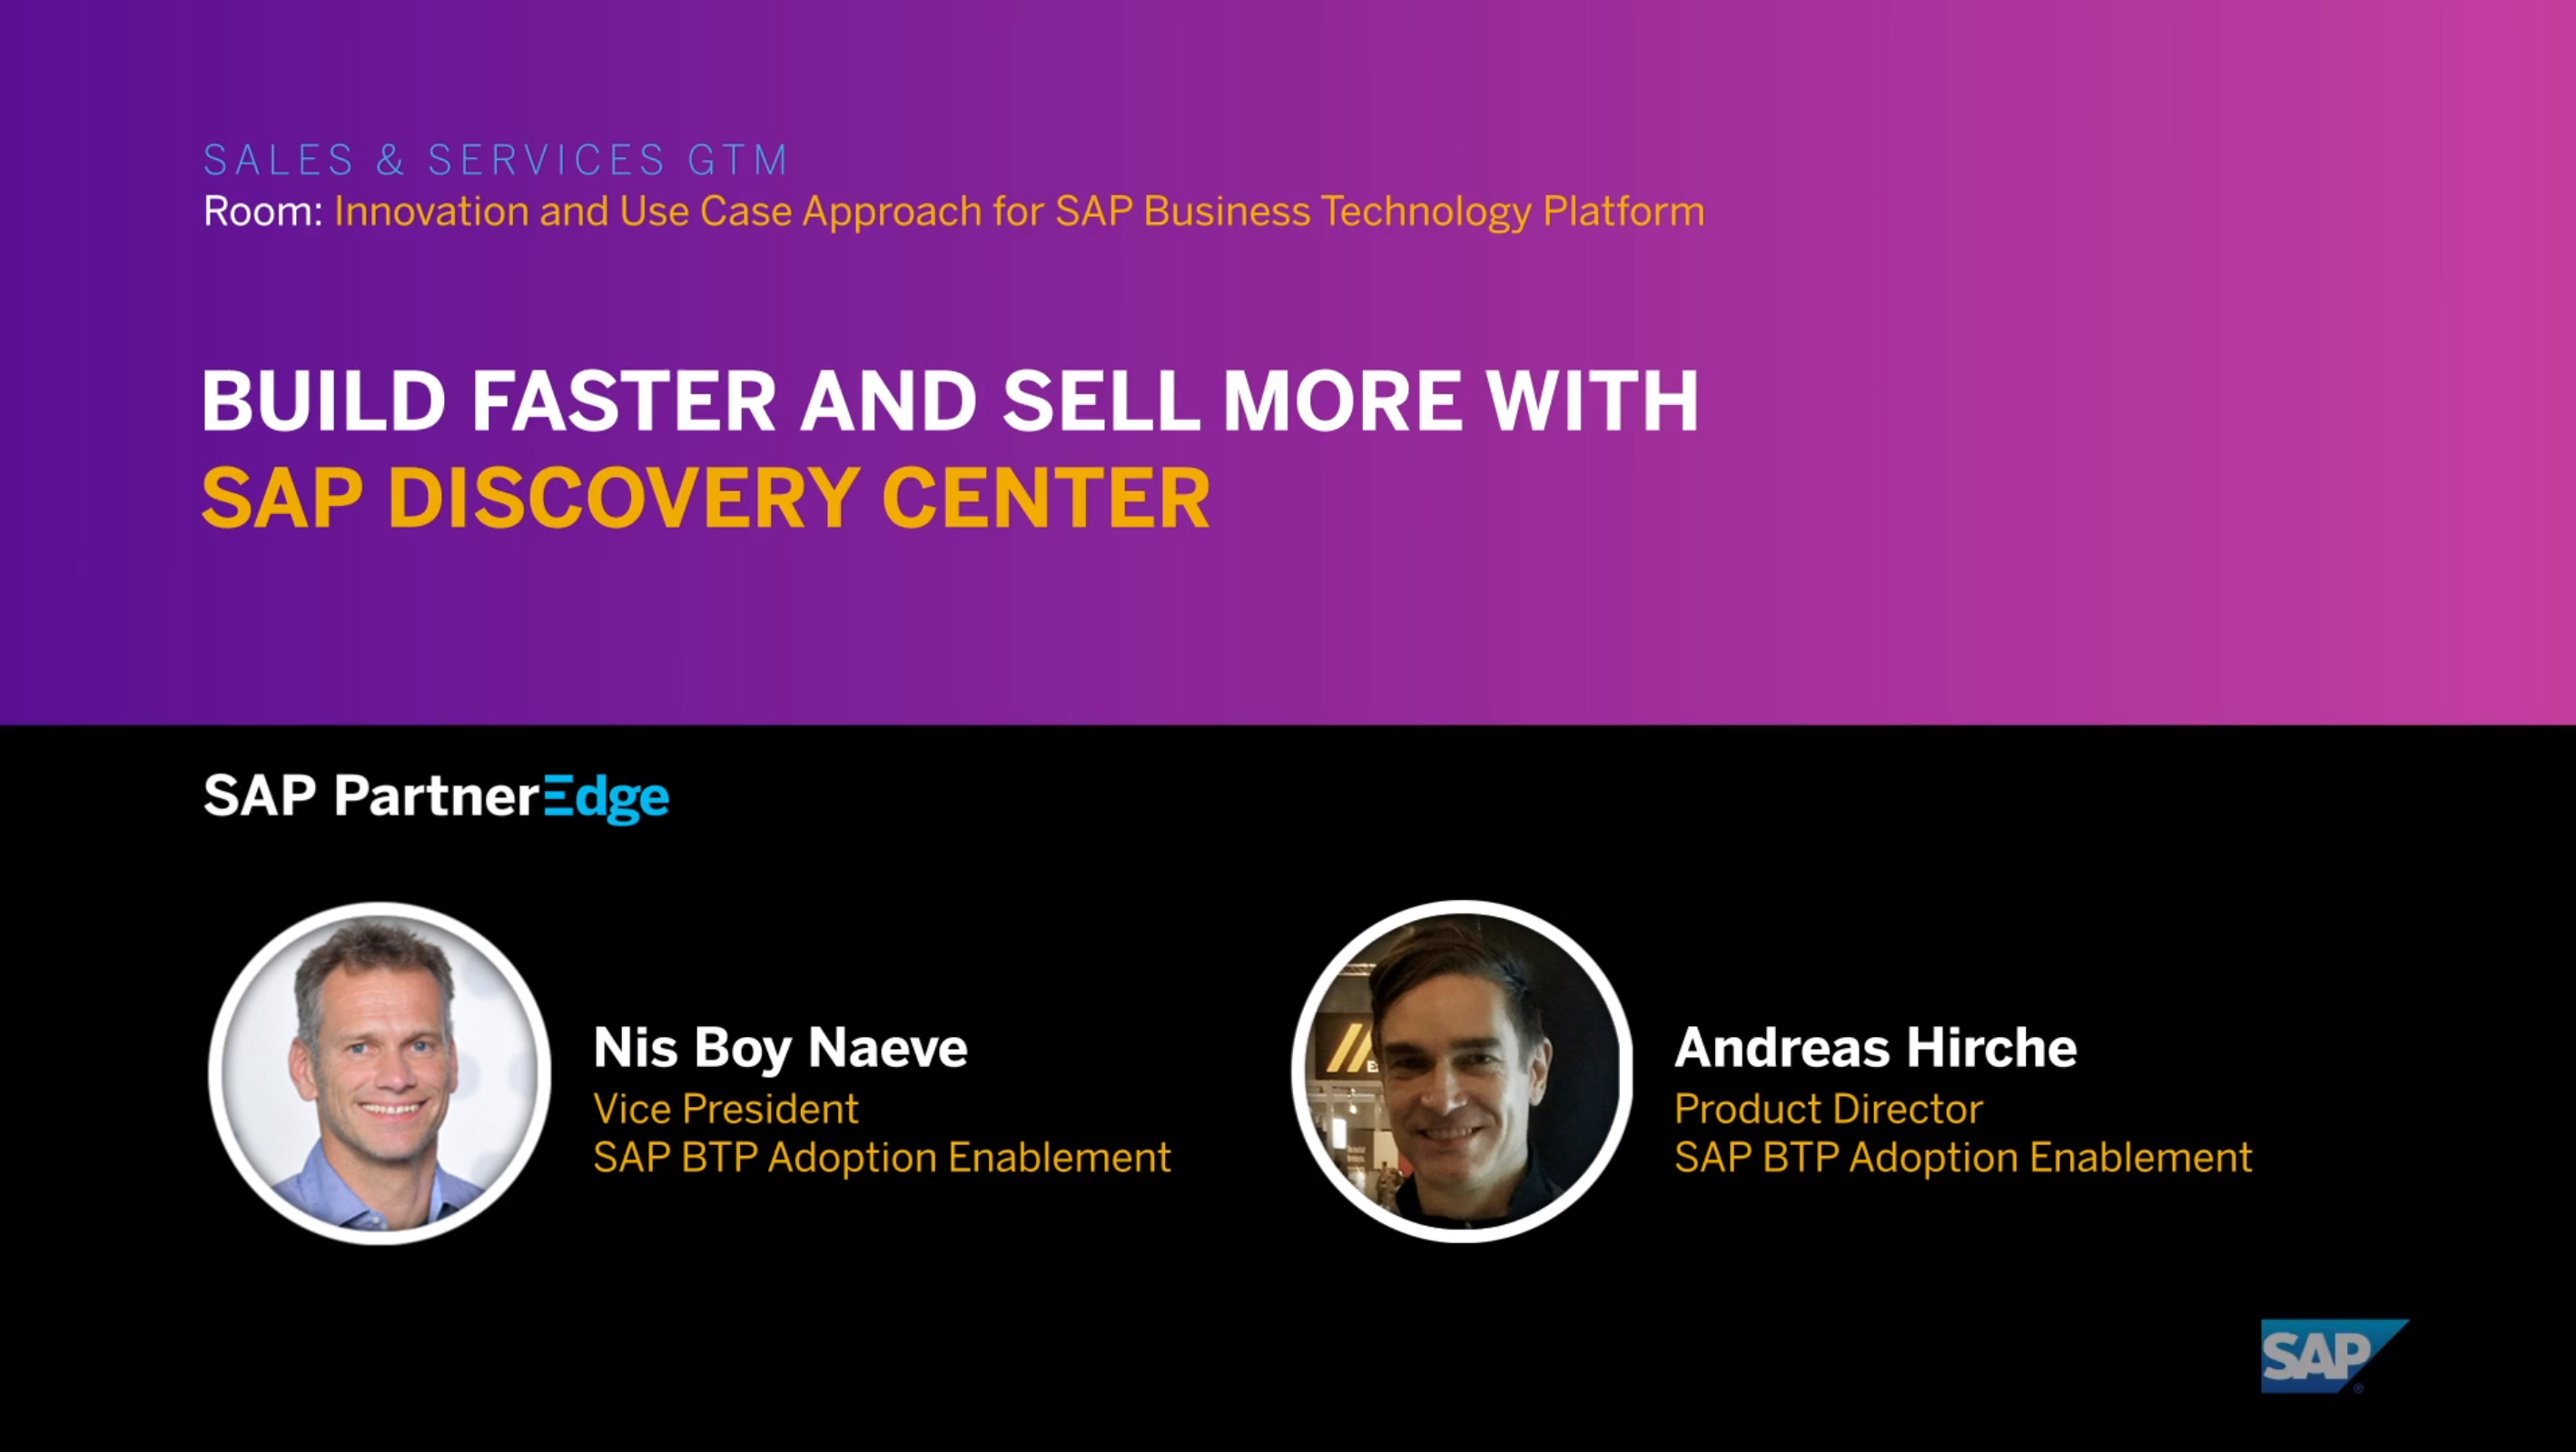 Session%20Title%3A%20Build%20faster%20and%20sell%20more%20with%20SAP%20Discovery%20Center%2C%20Contacts%3A%20Nis%20Boy%20Naeve%20and%20Andreas%20Hirche